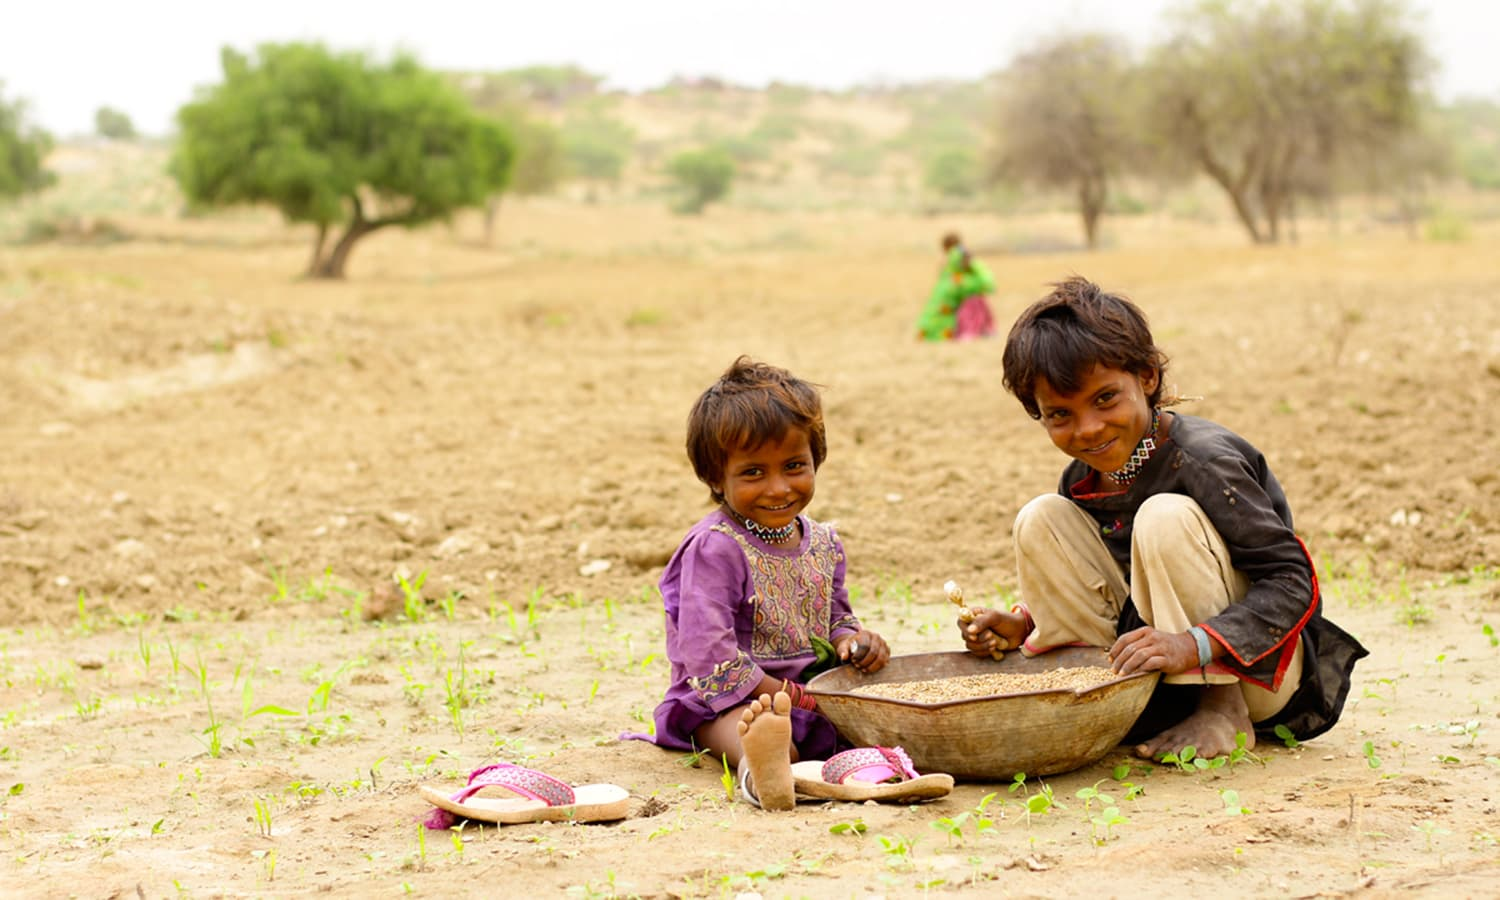 Rain and good harvest brings happiness on the faces of children.